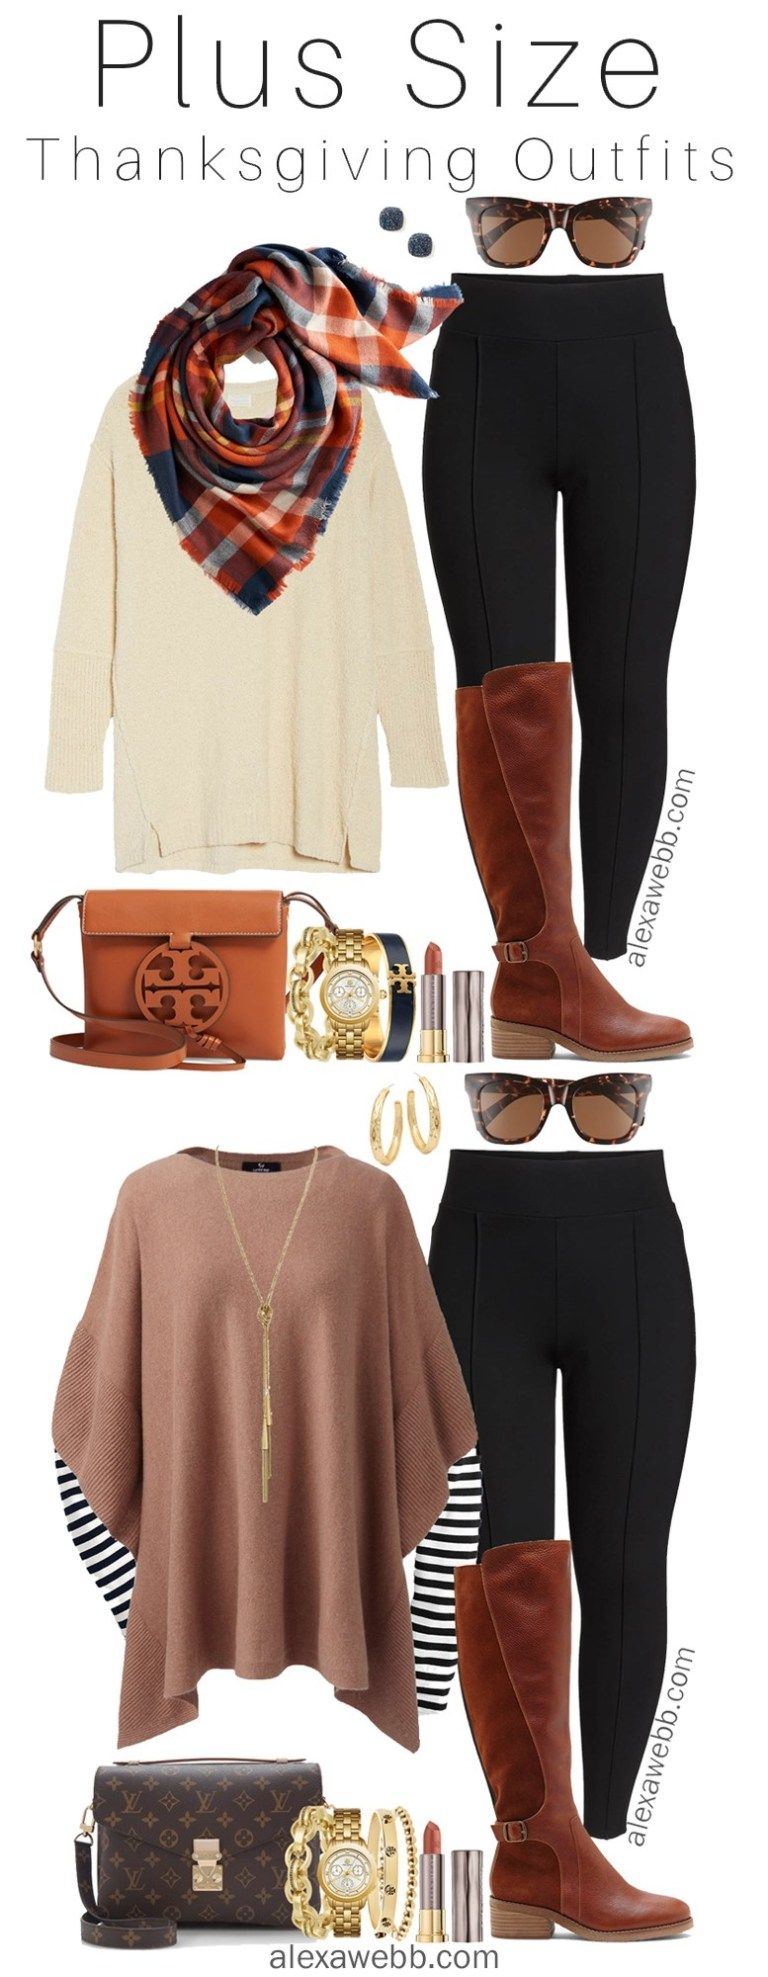 Plus Size Thanksgiving Outfits - Part 1 - Plus Size Fall Casual Outfit Ideas…